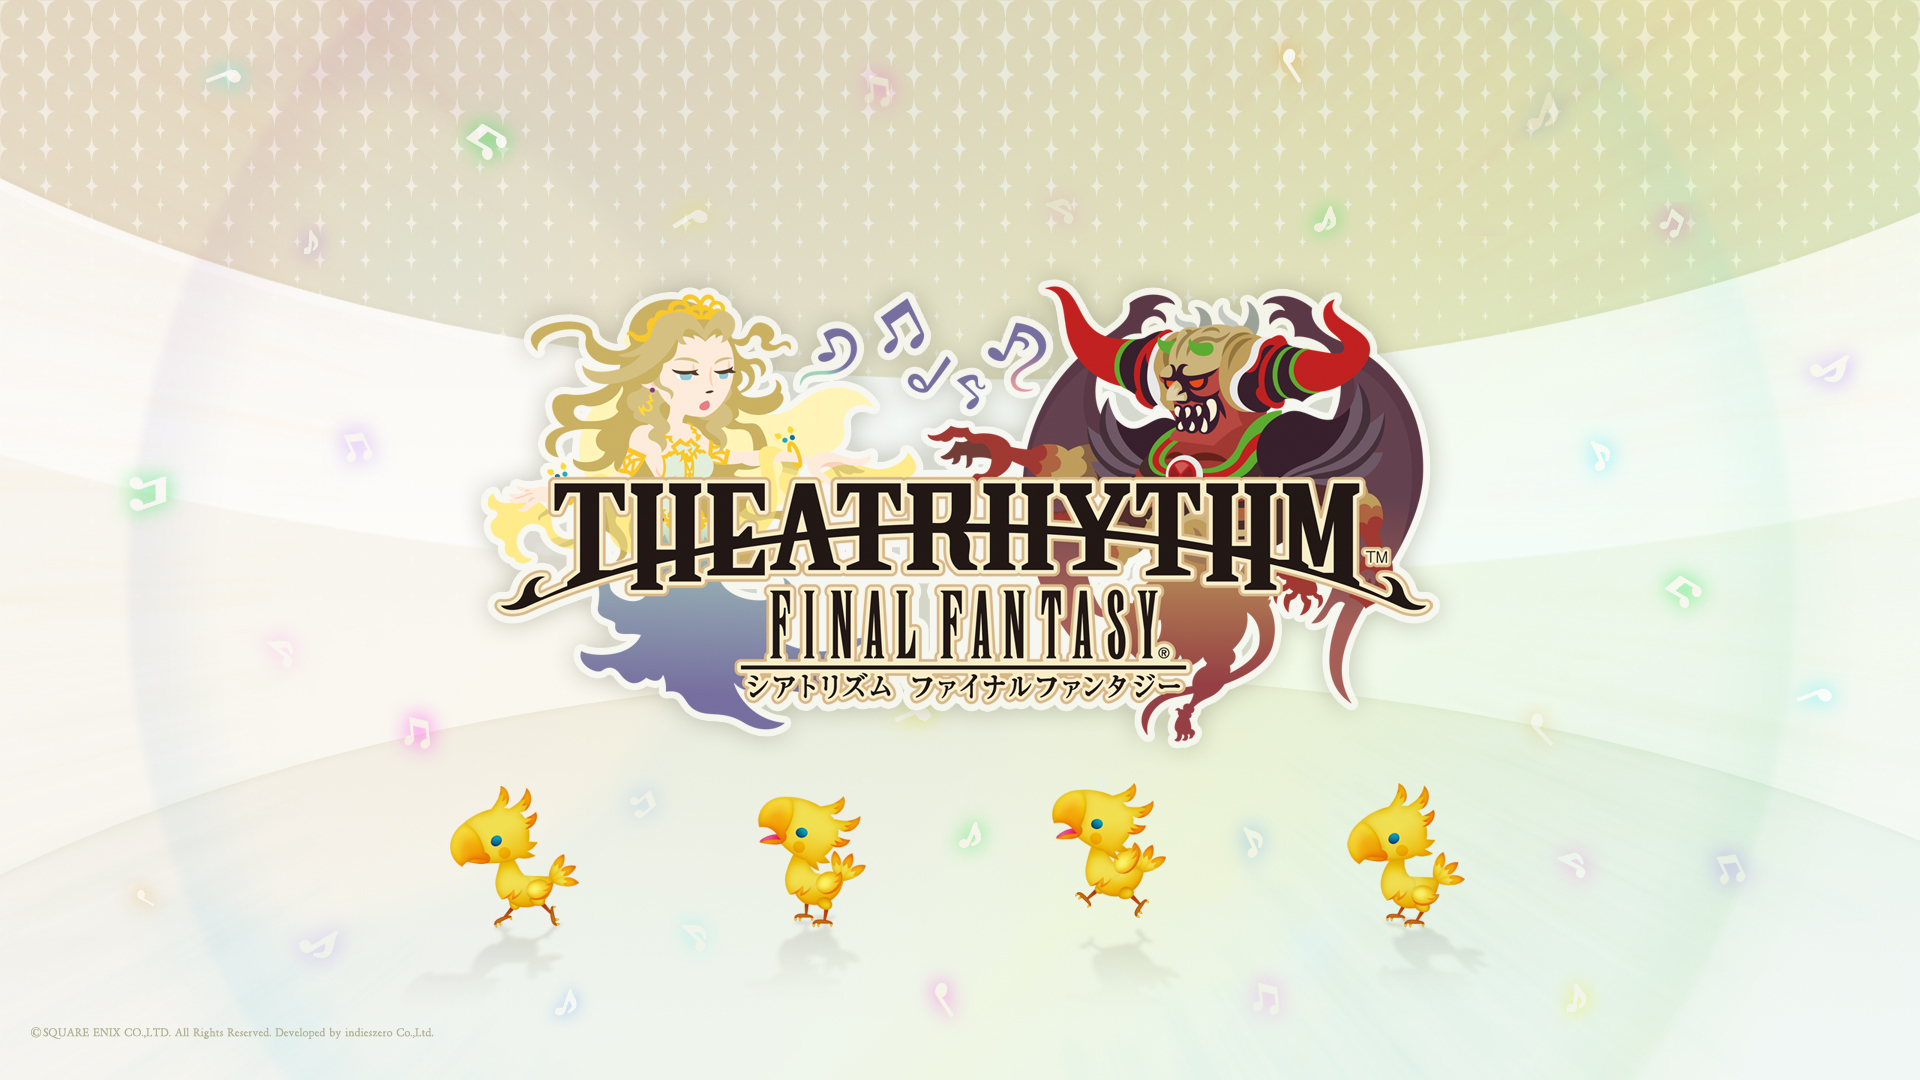 theatrhythm-final-fantasy-nintendo-3ds-31705-wp.jpg